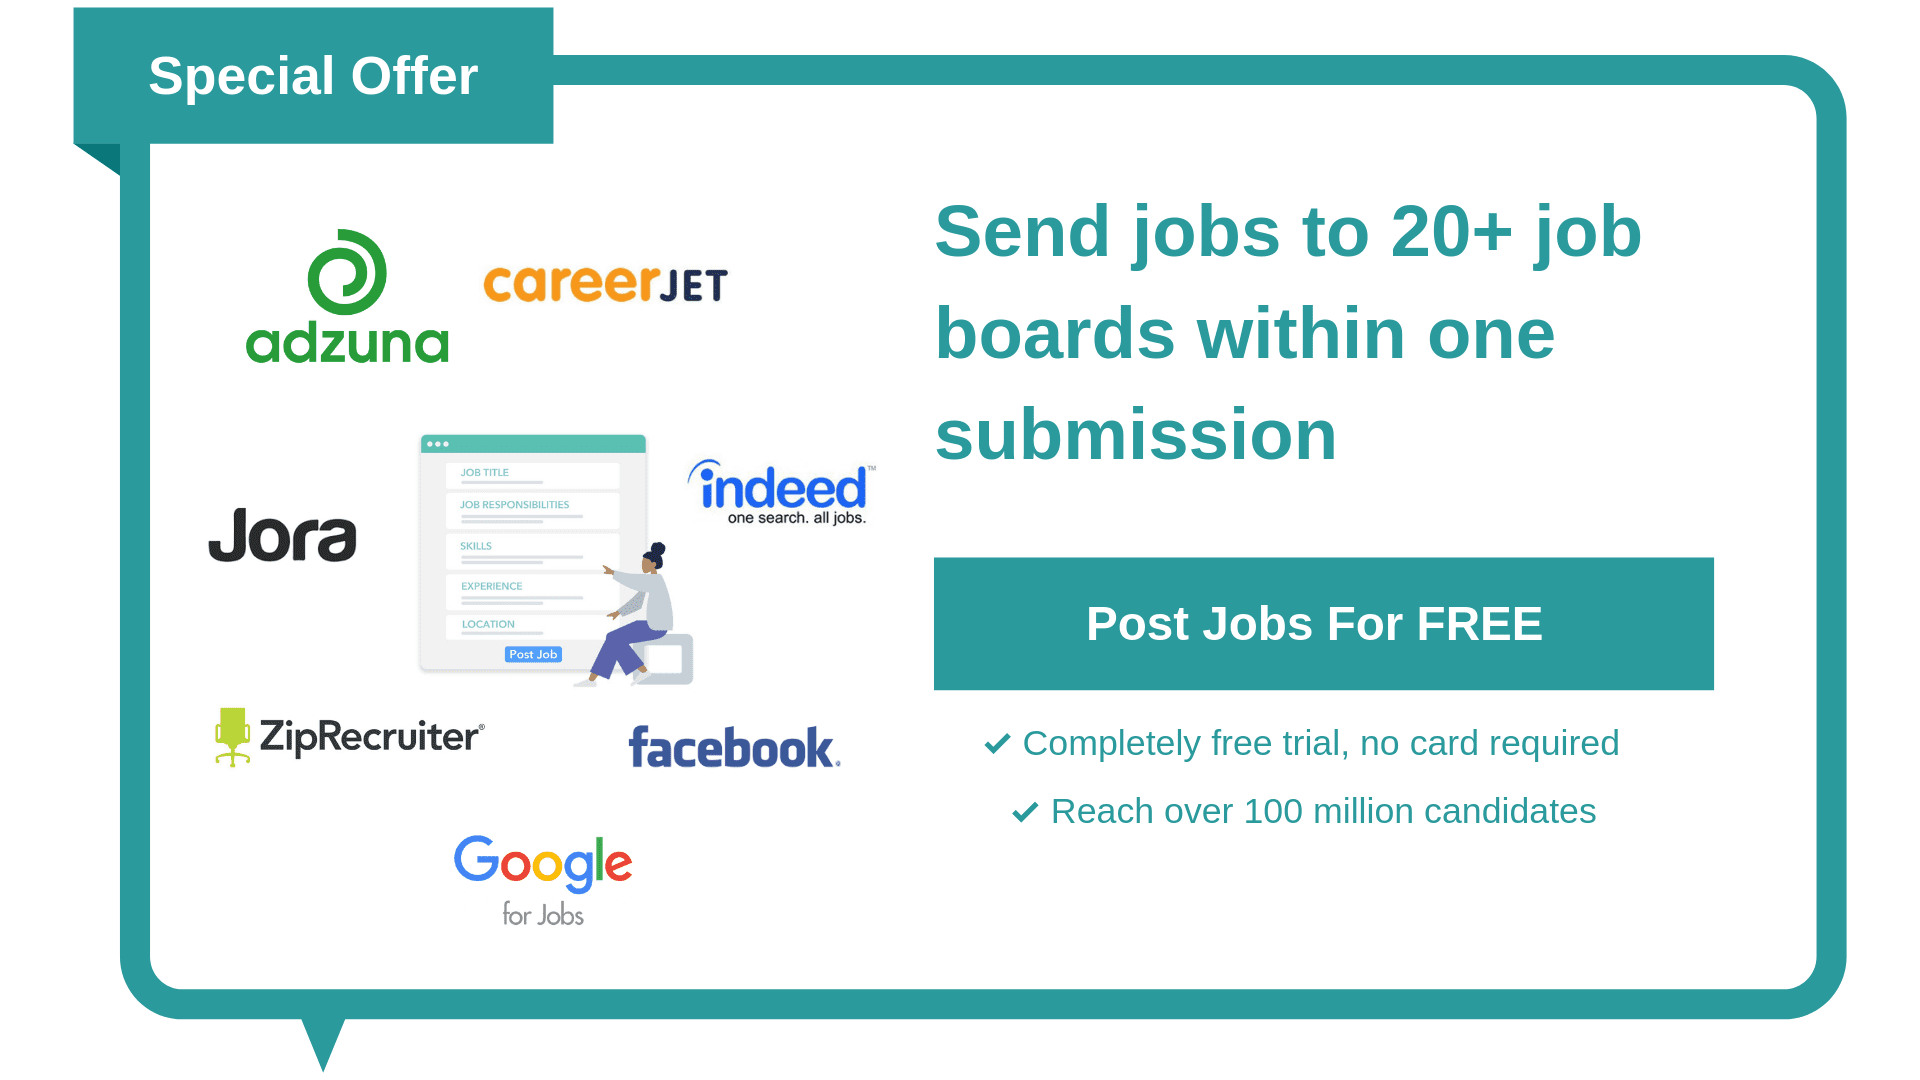 job board posting, indeed, zip recruiter, adzuna, jora, google for jobs, post a free job, free job posting, workable, breezy hr, bullhorn, taleo, recruitee, greenhouse